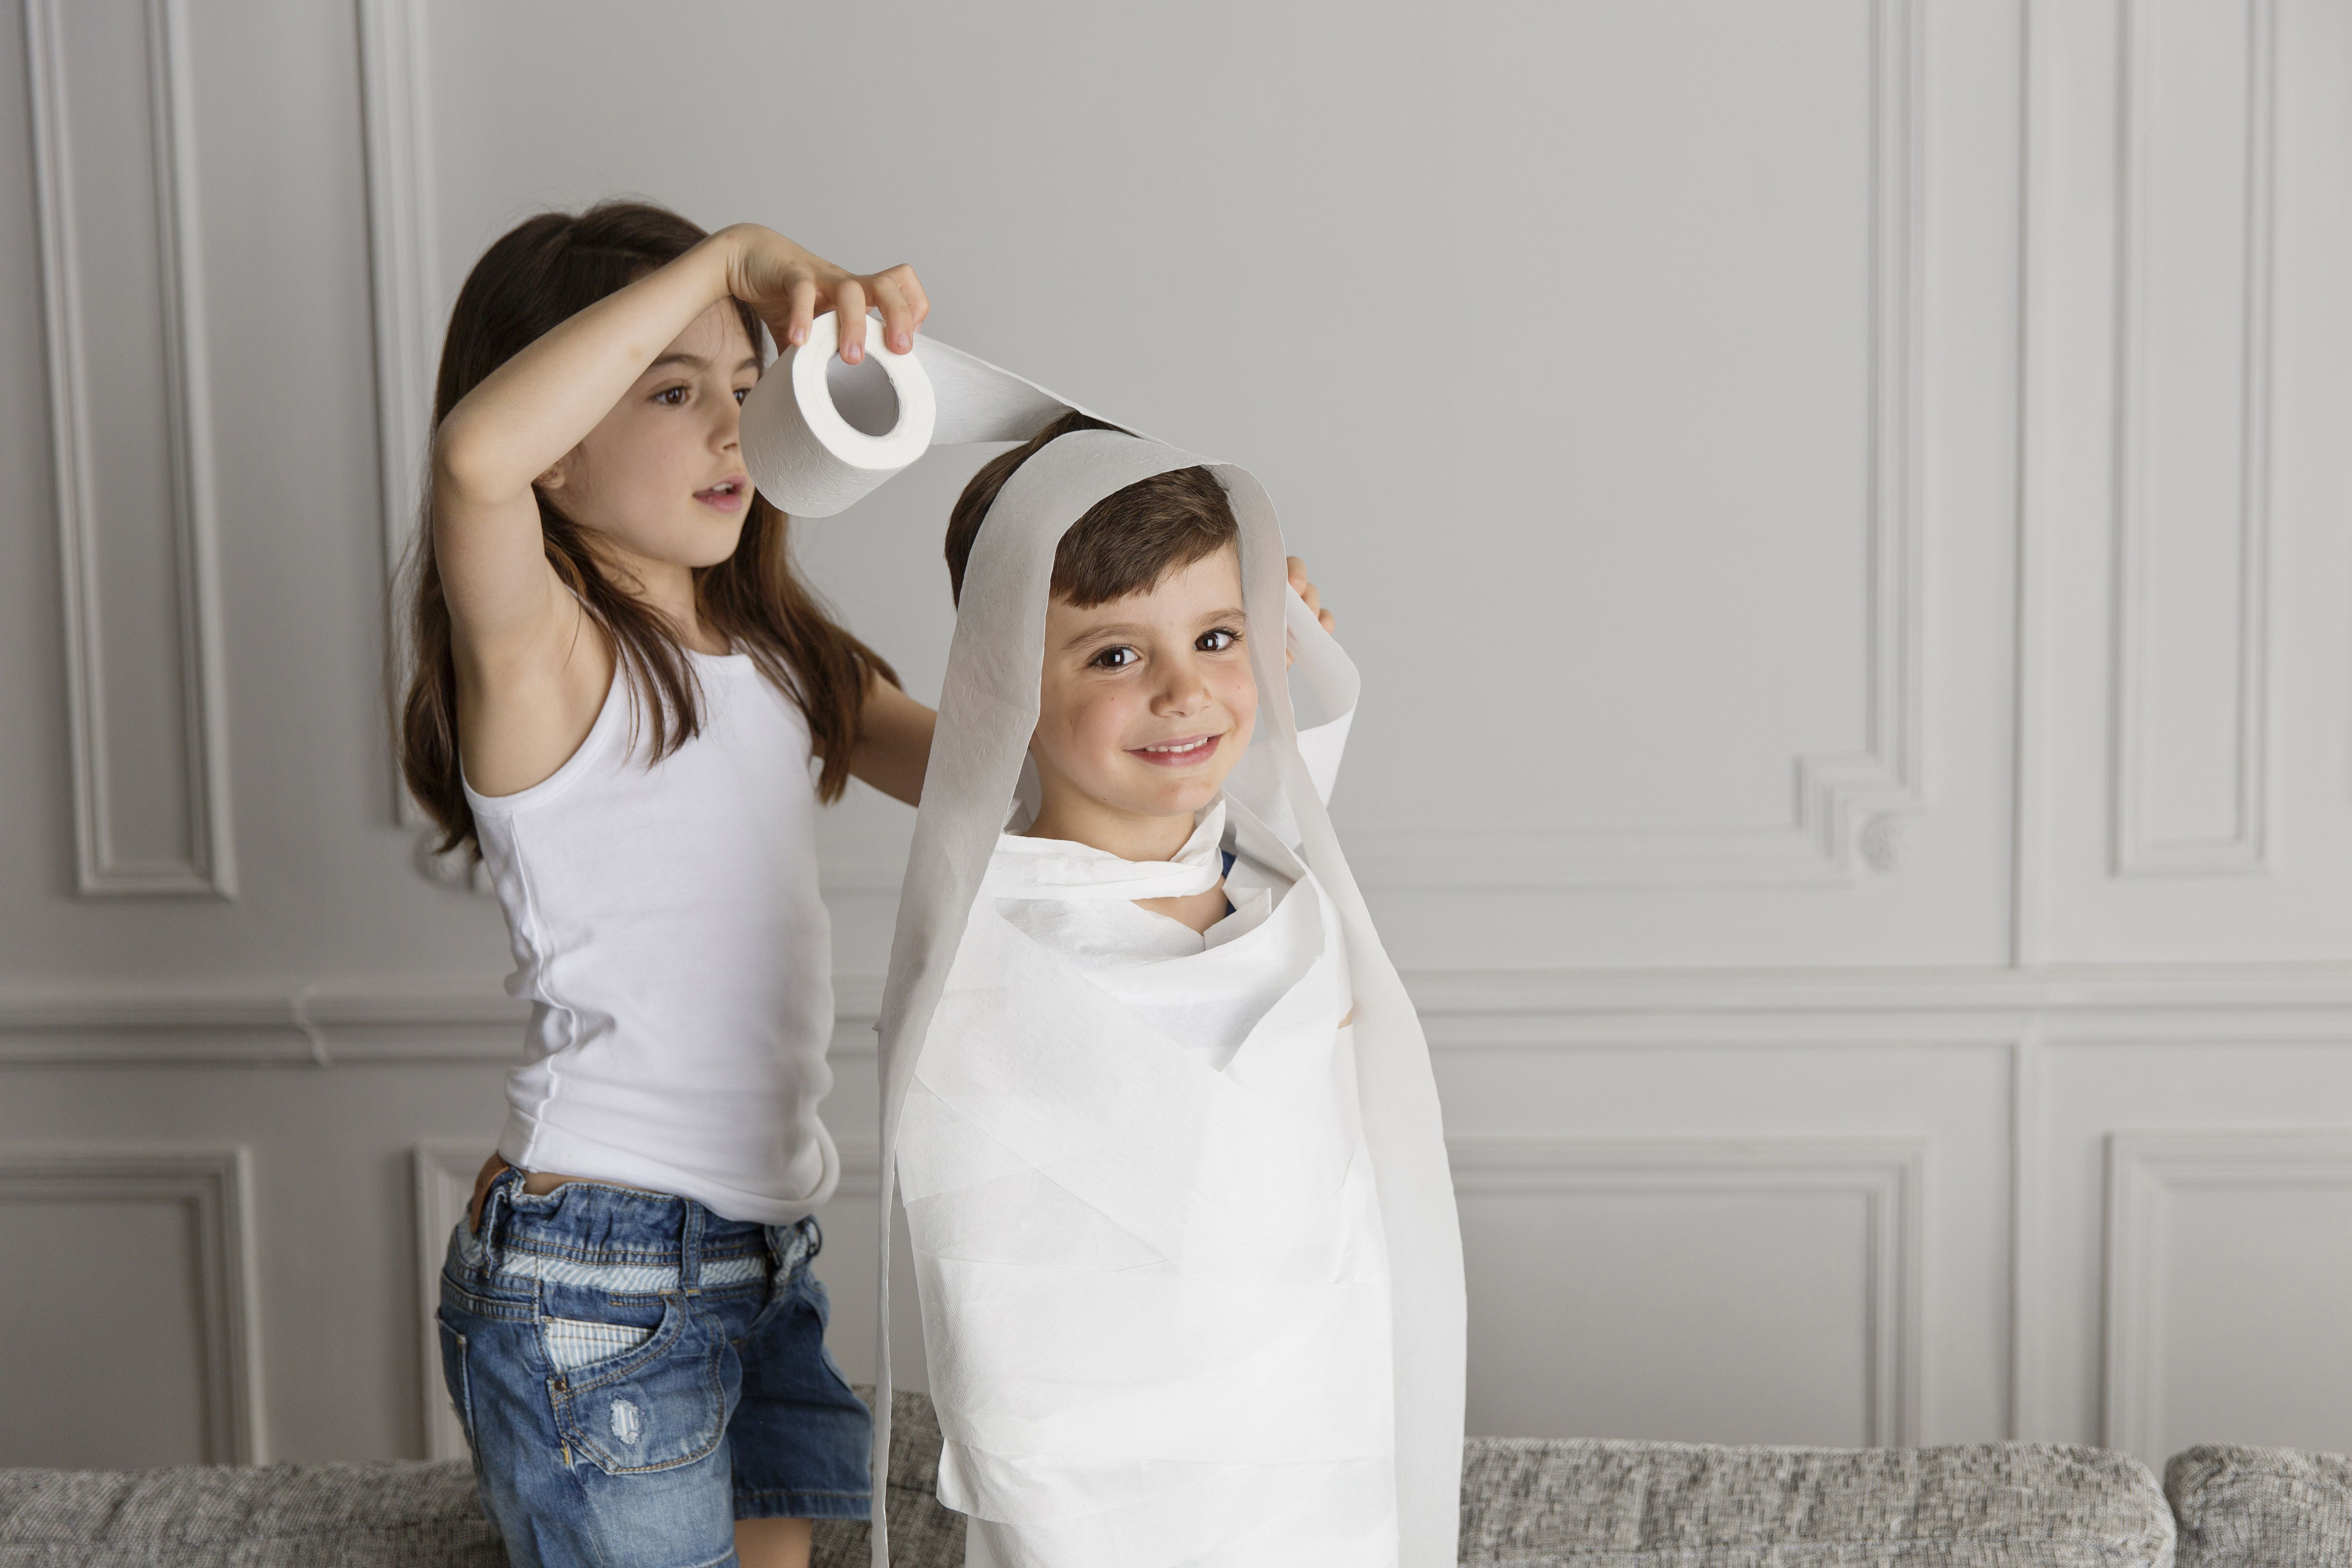 Girl wrapping toilet paper around younger kid